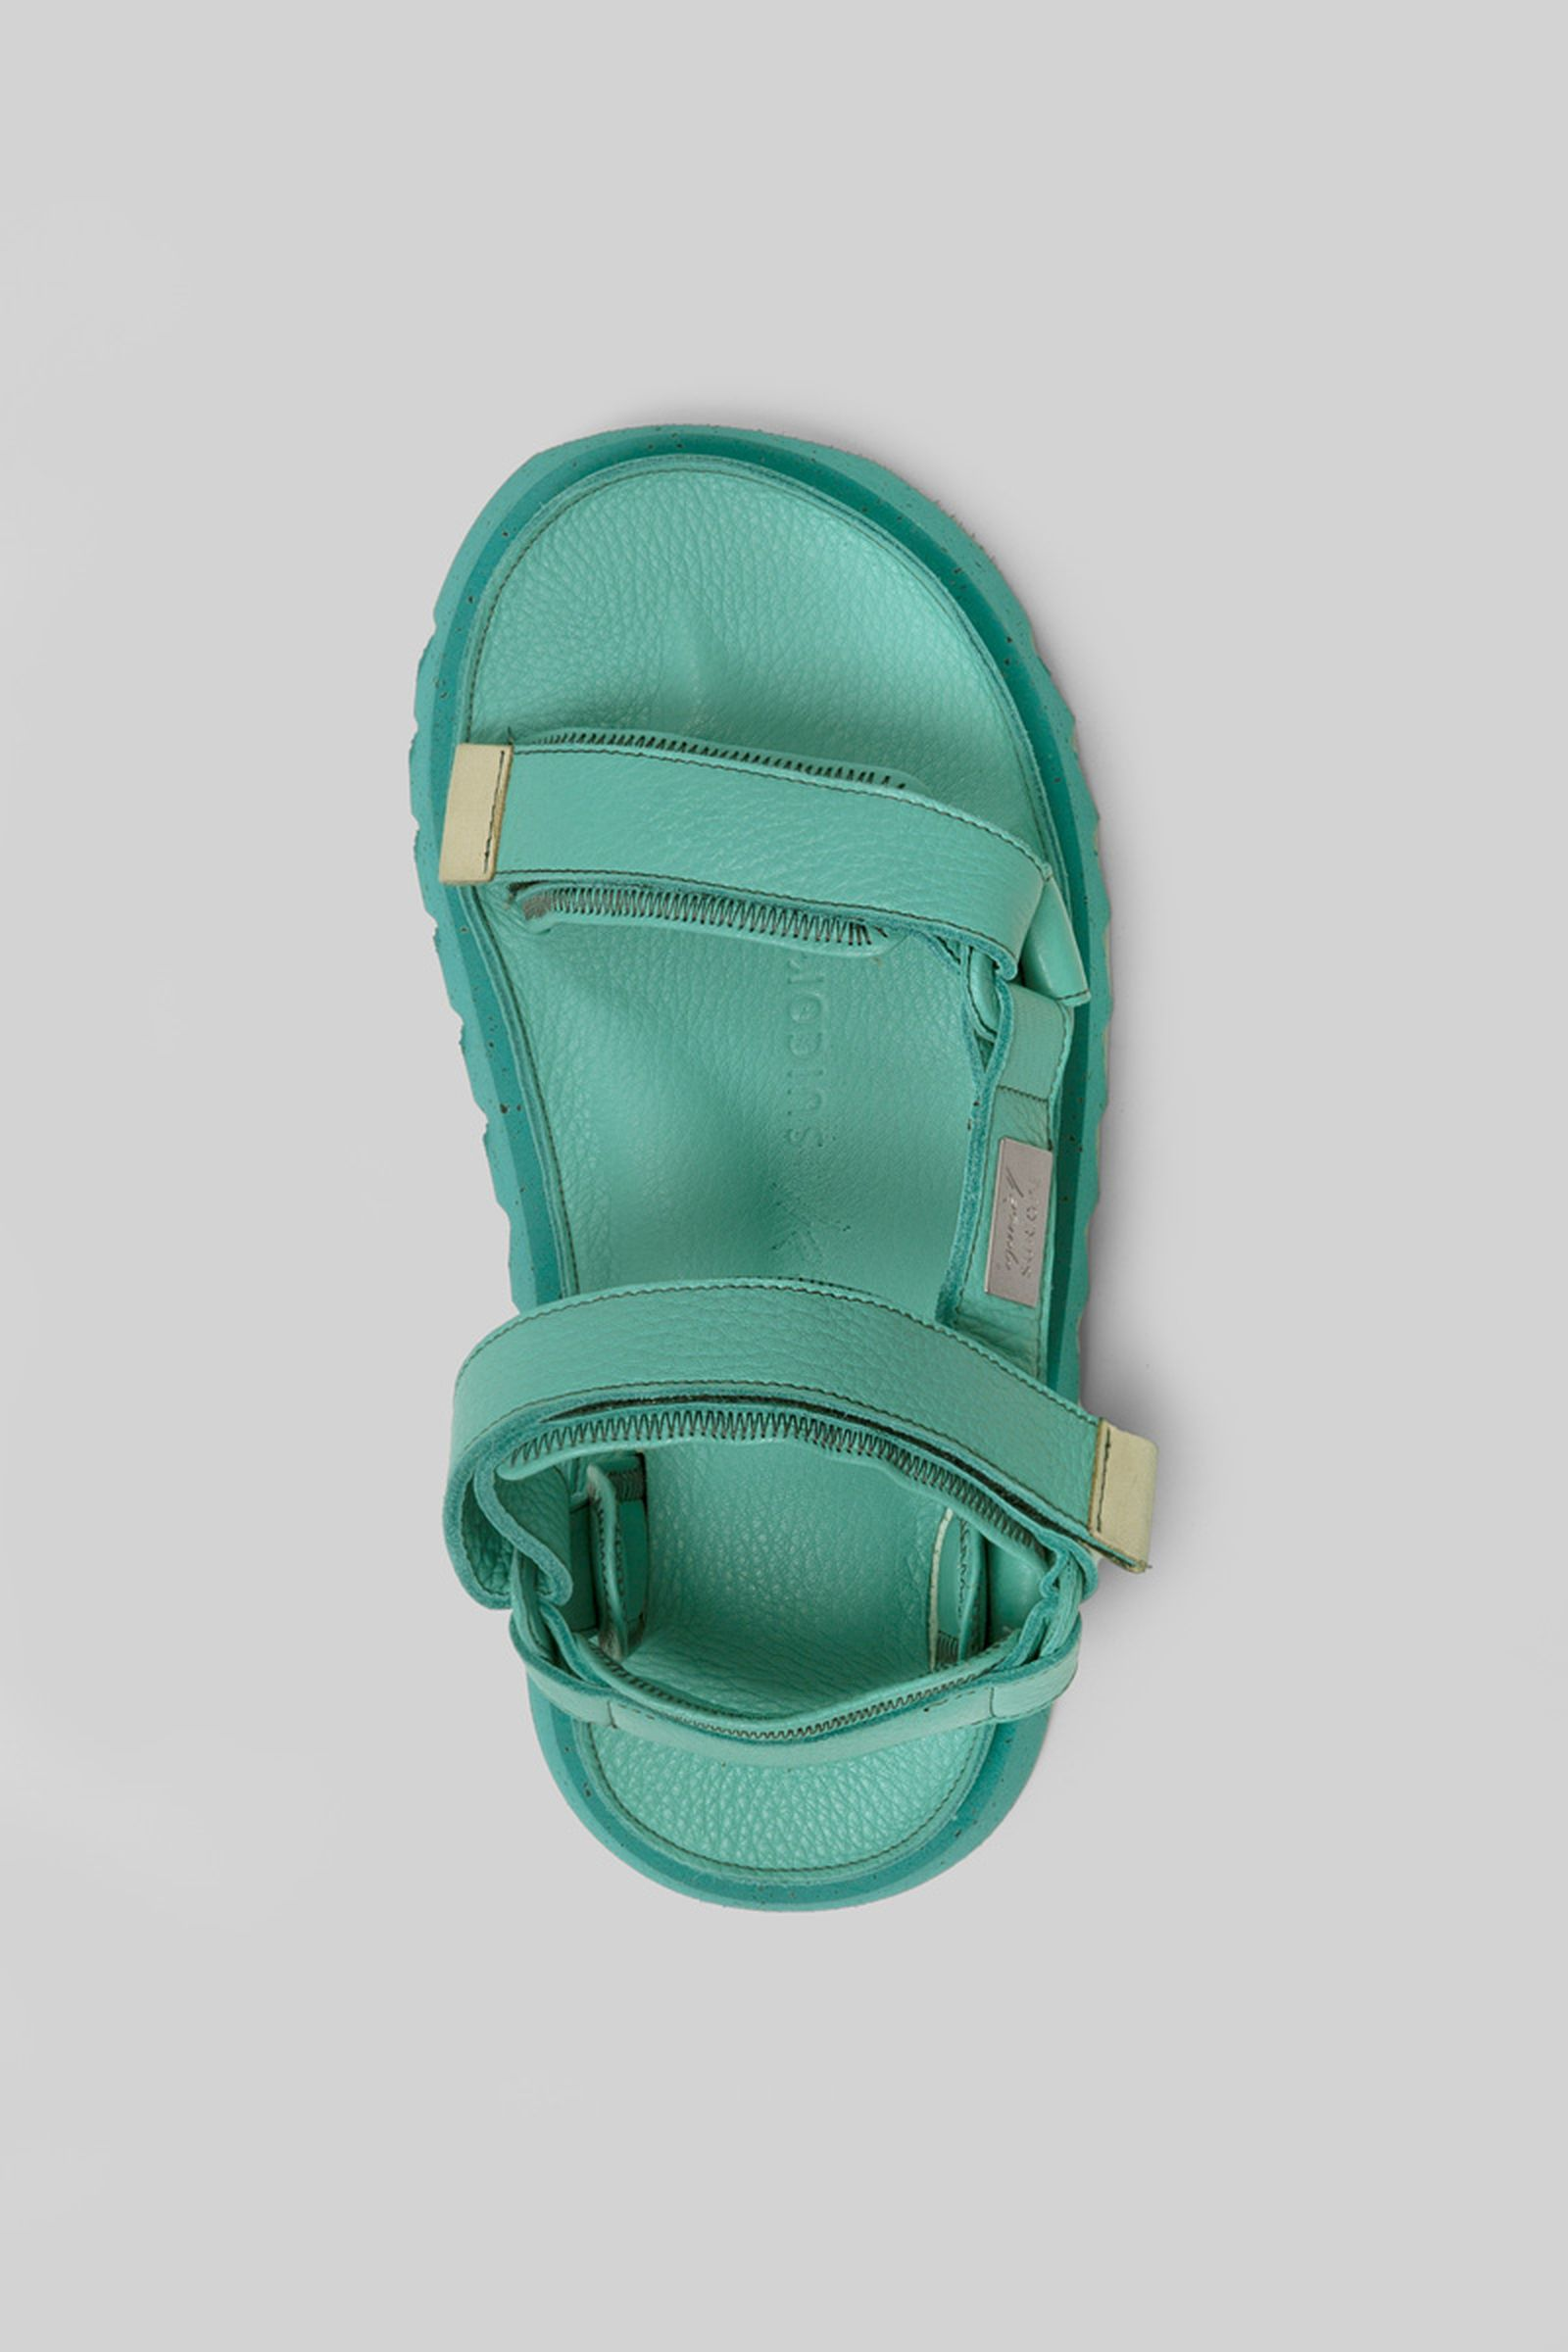 marsell-suicoke-ss21-collection-release-date-price-15